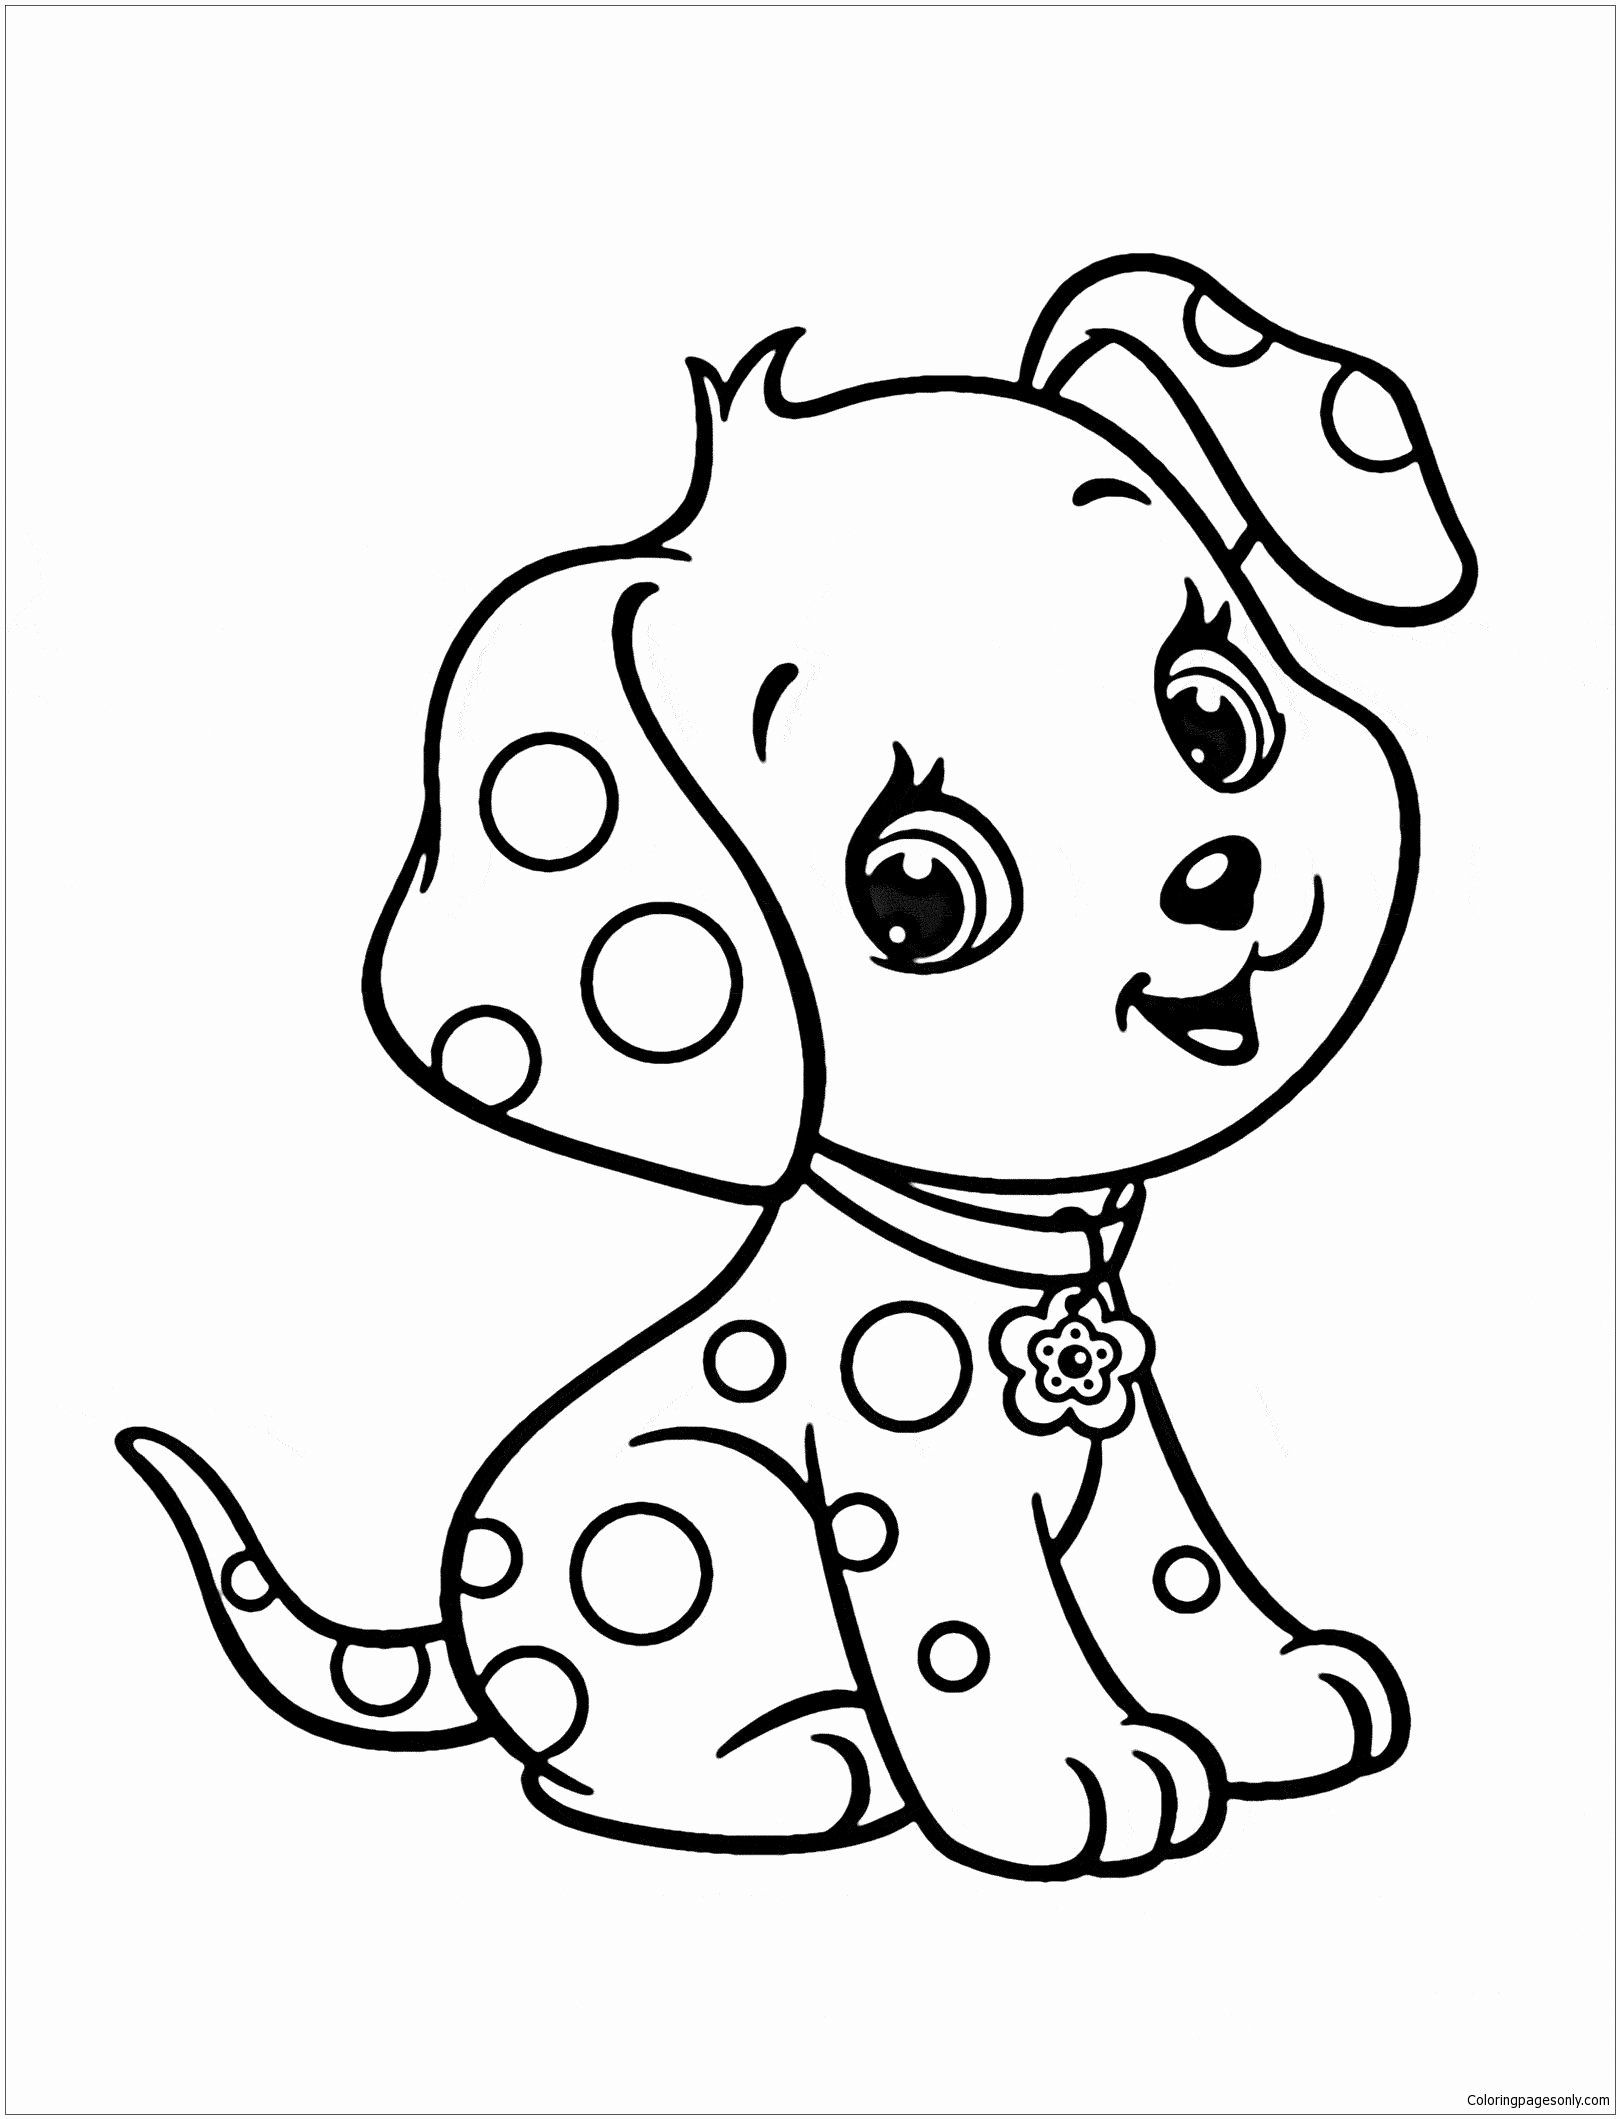 22+ Cute animal coloring pages to print ideas